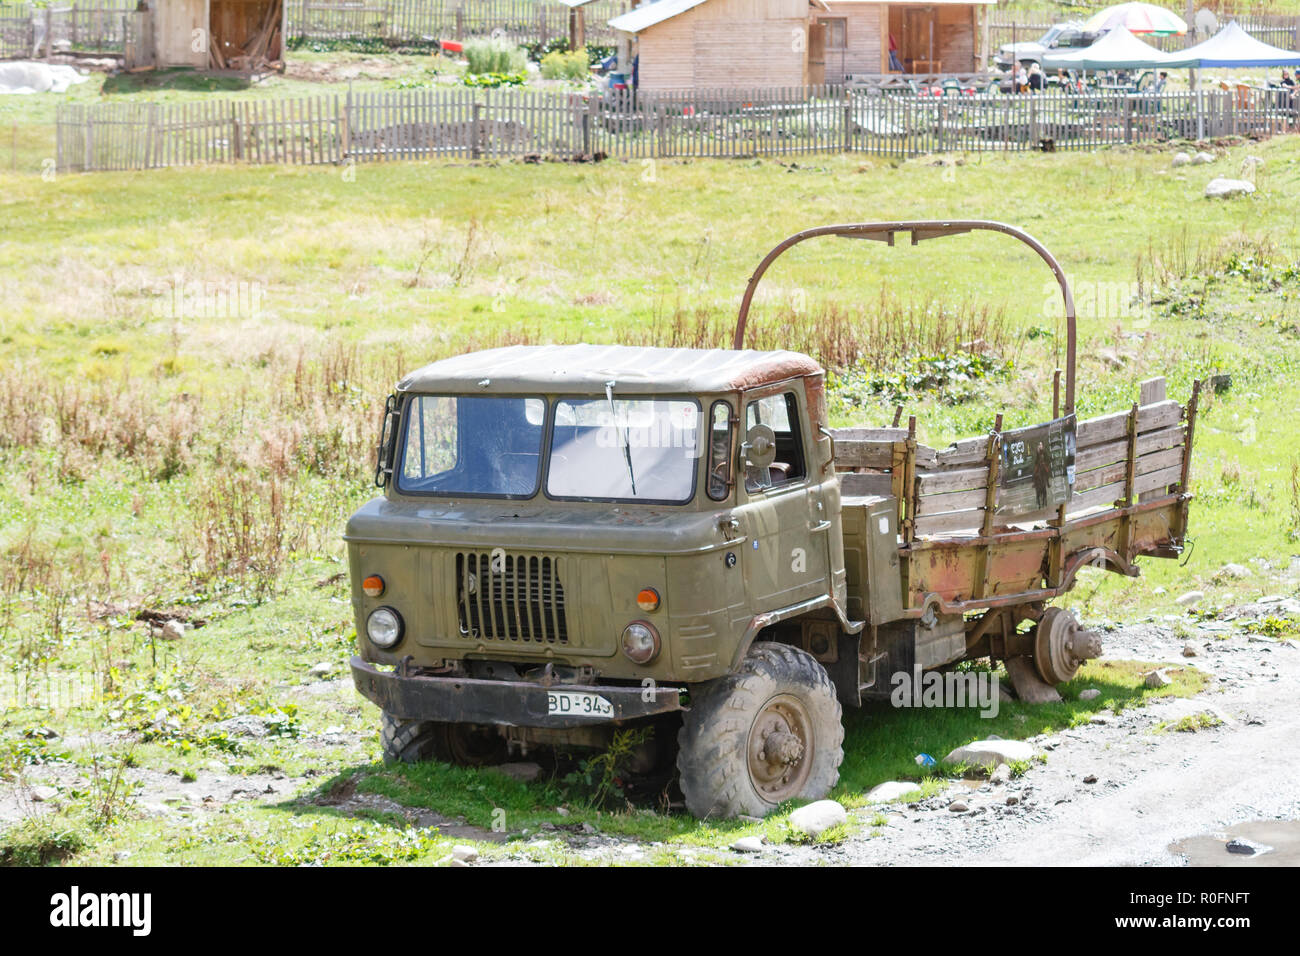 Old abandoned rusty military truck. Sunny day in Ushguli, Svaneti, Georgia - Stock Image